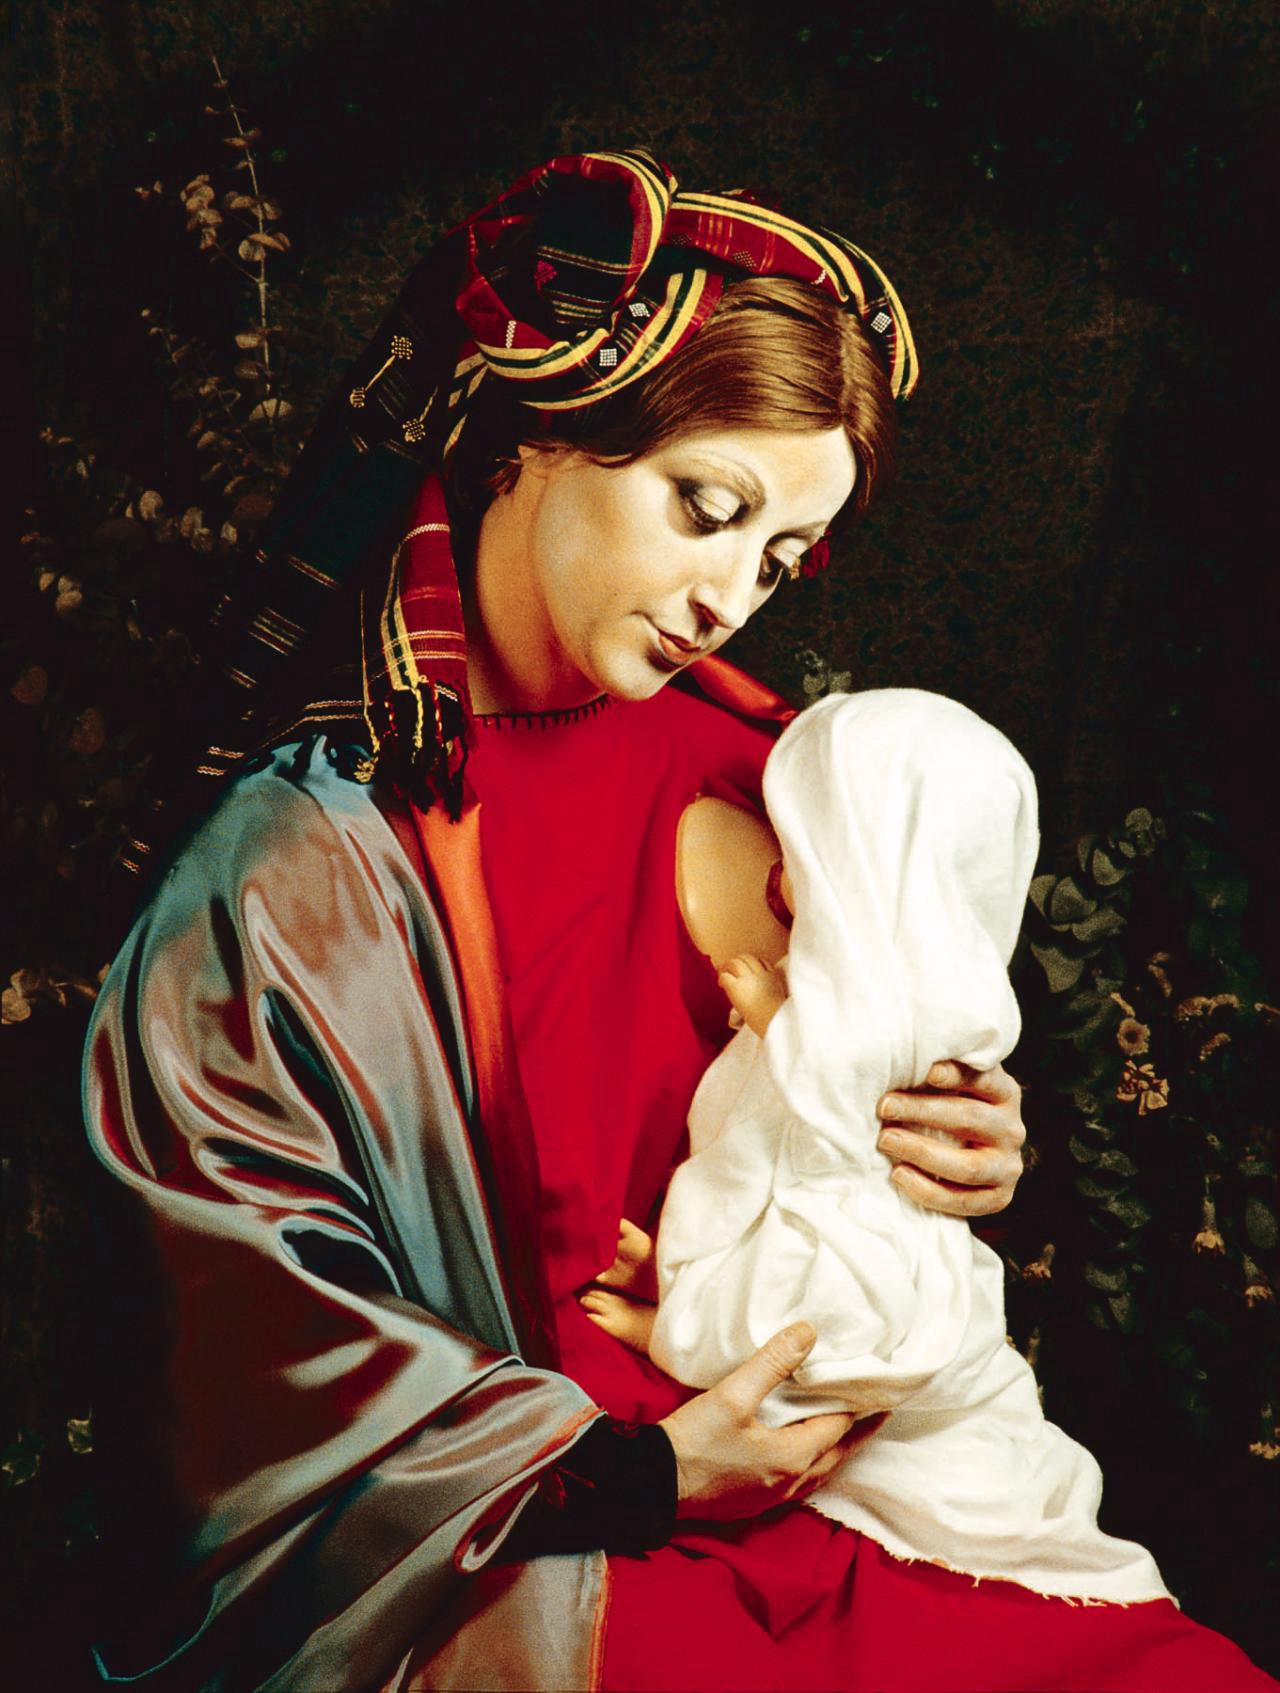 Cindy Sherman photo of madonna and child.